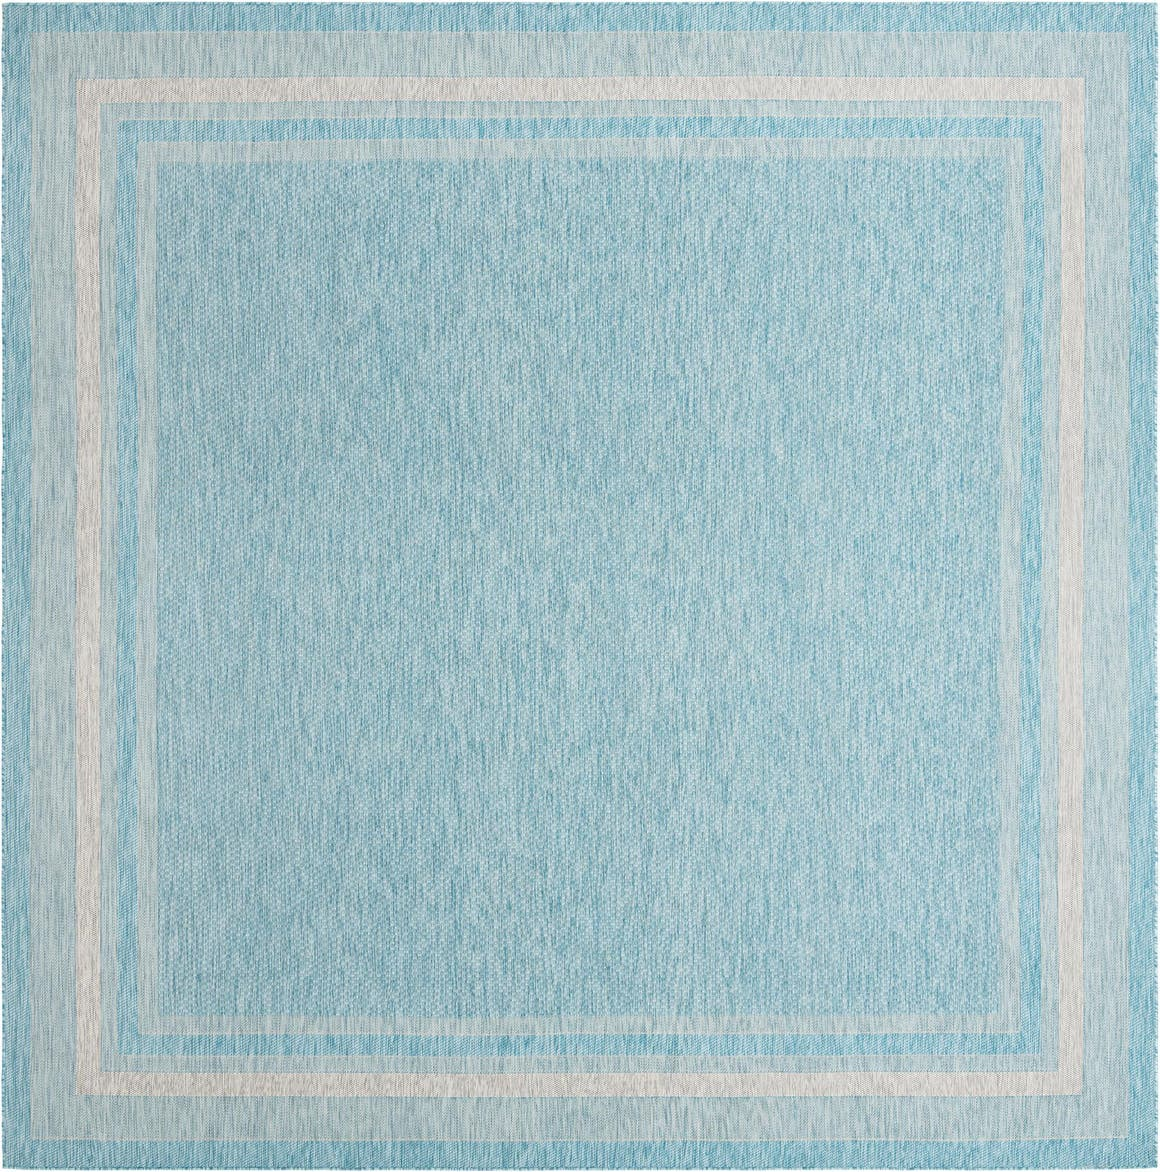 13' x 13' Outdoor Border Square Rug main image